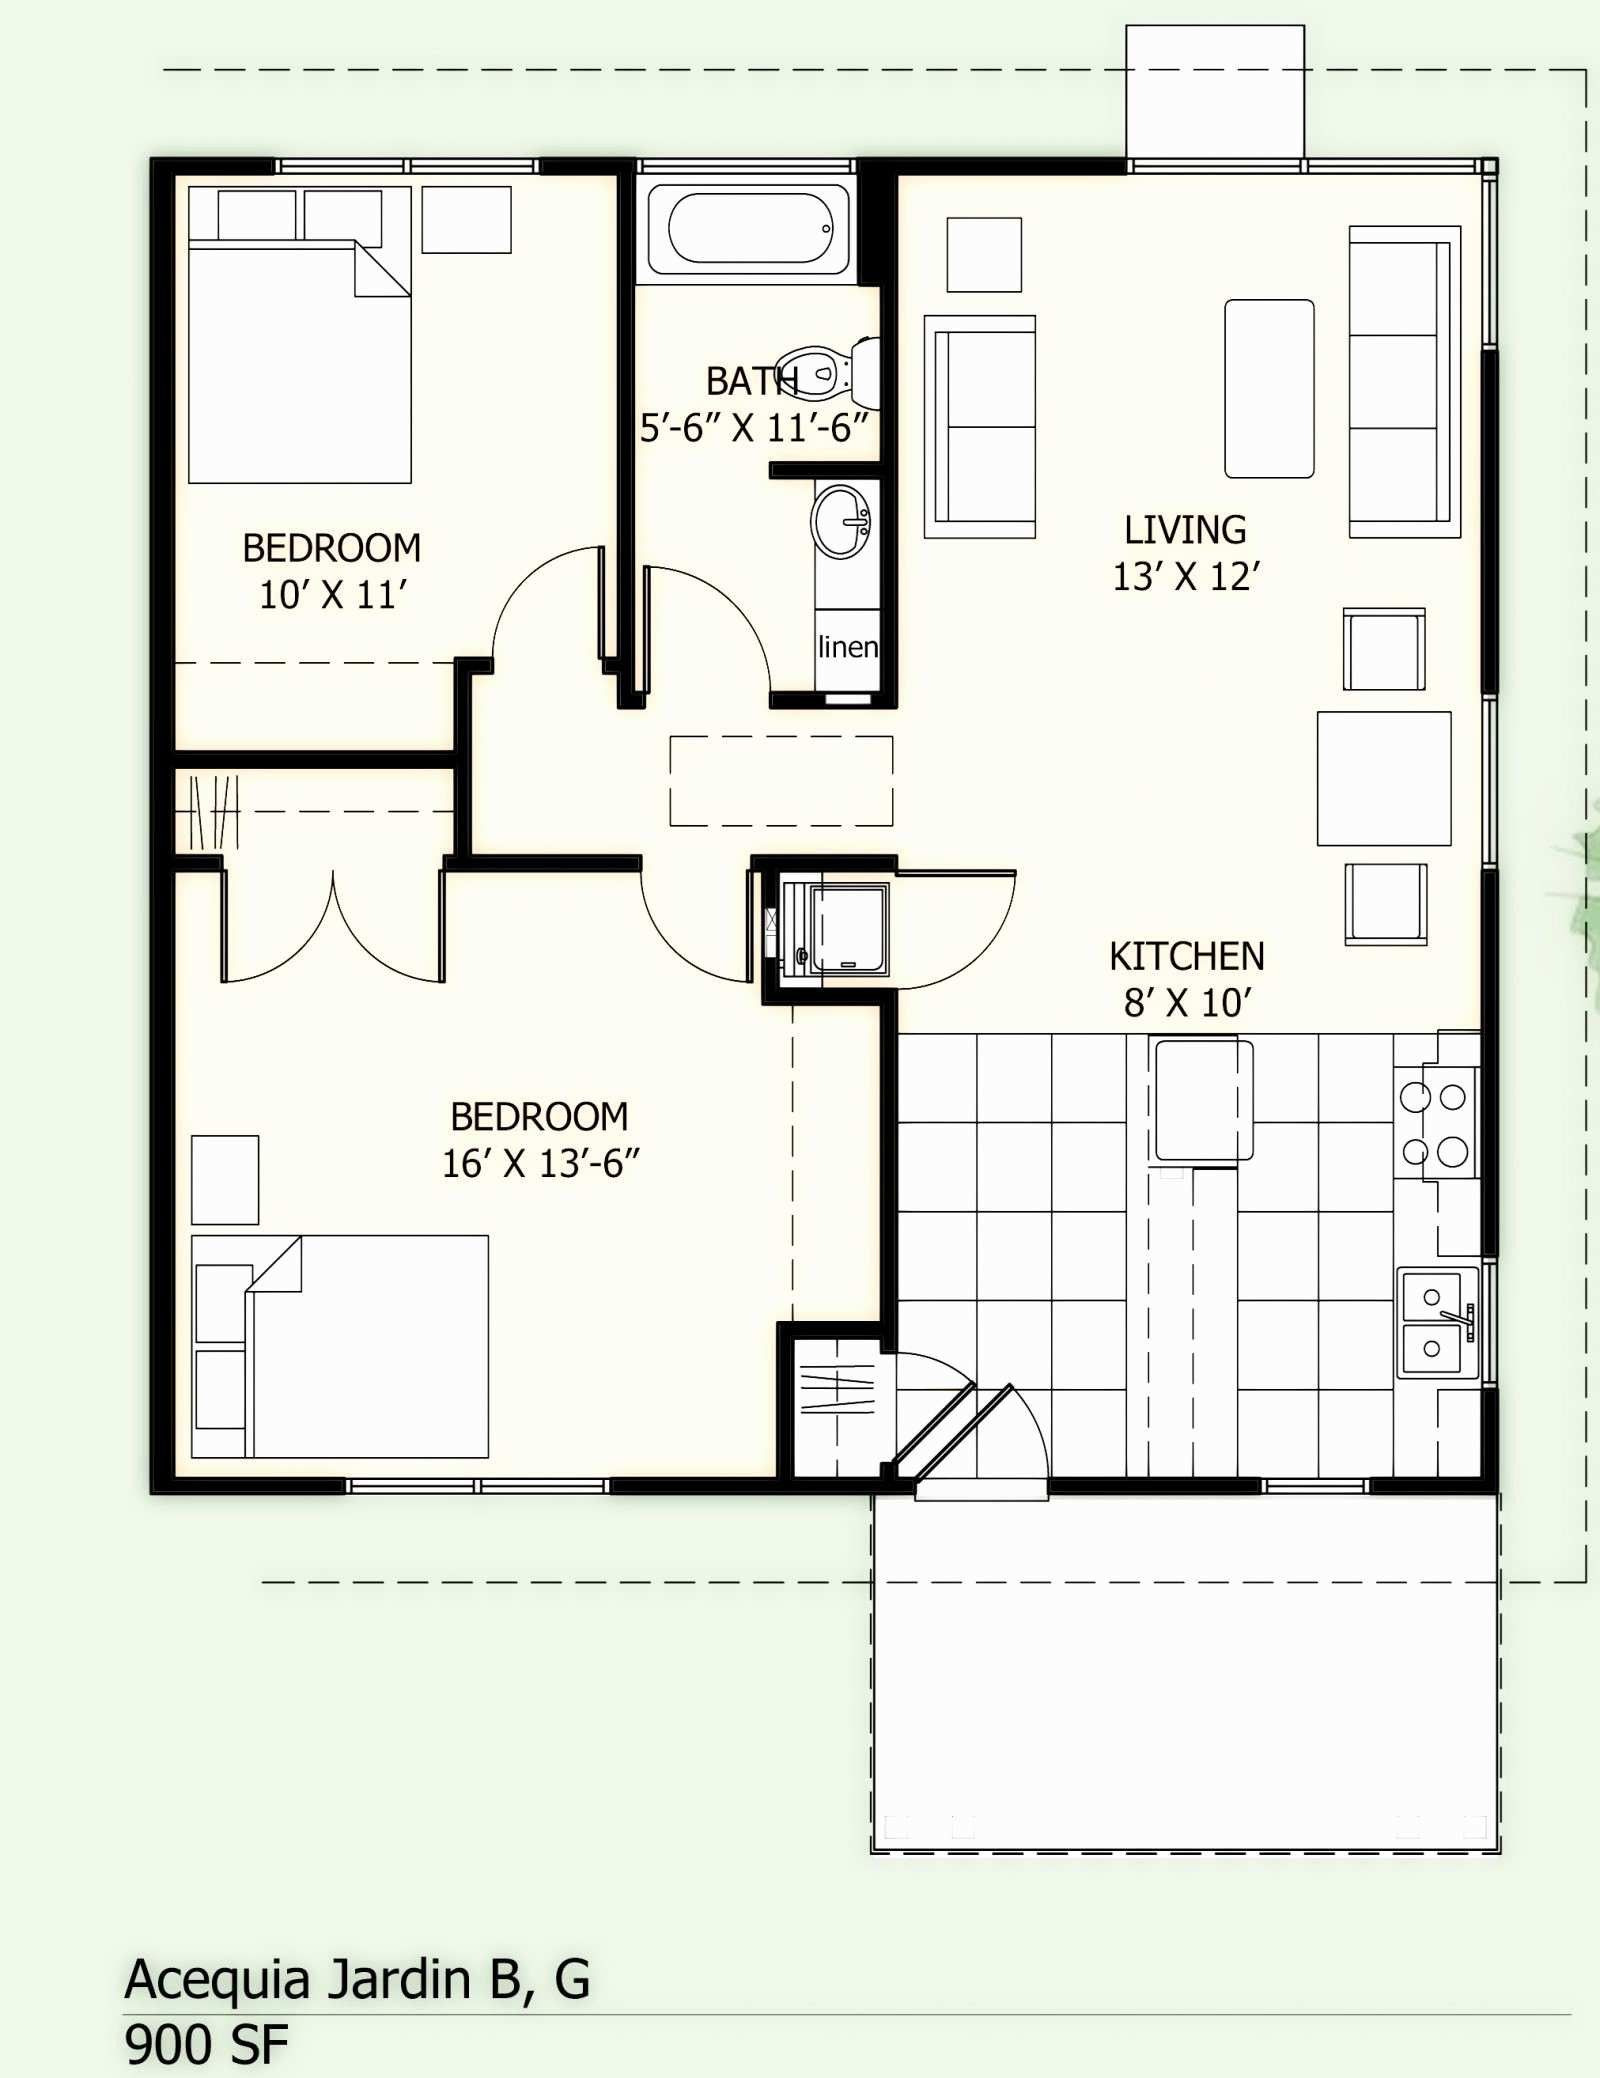 Small House Plans Under 700 Sq Ft Unique Image Result for 700 Sq Ft House Plans